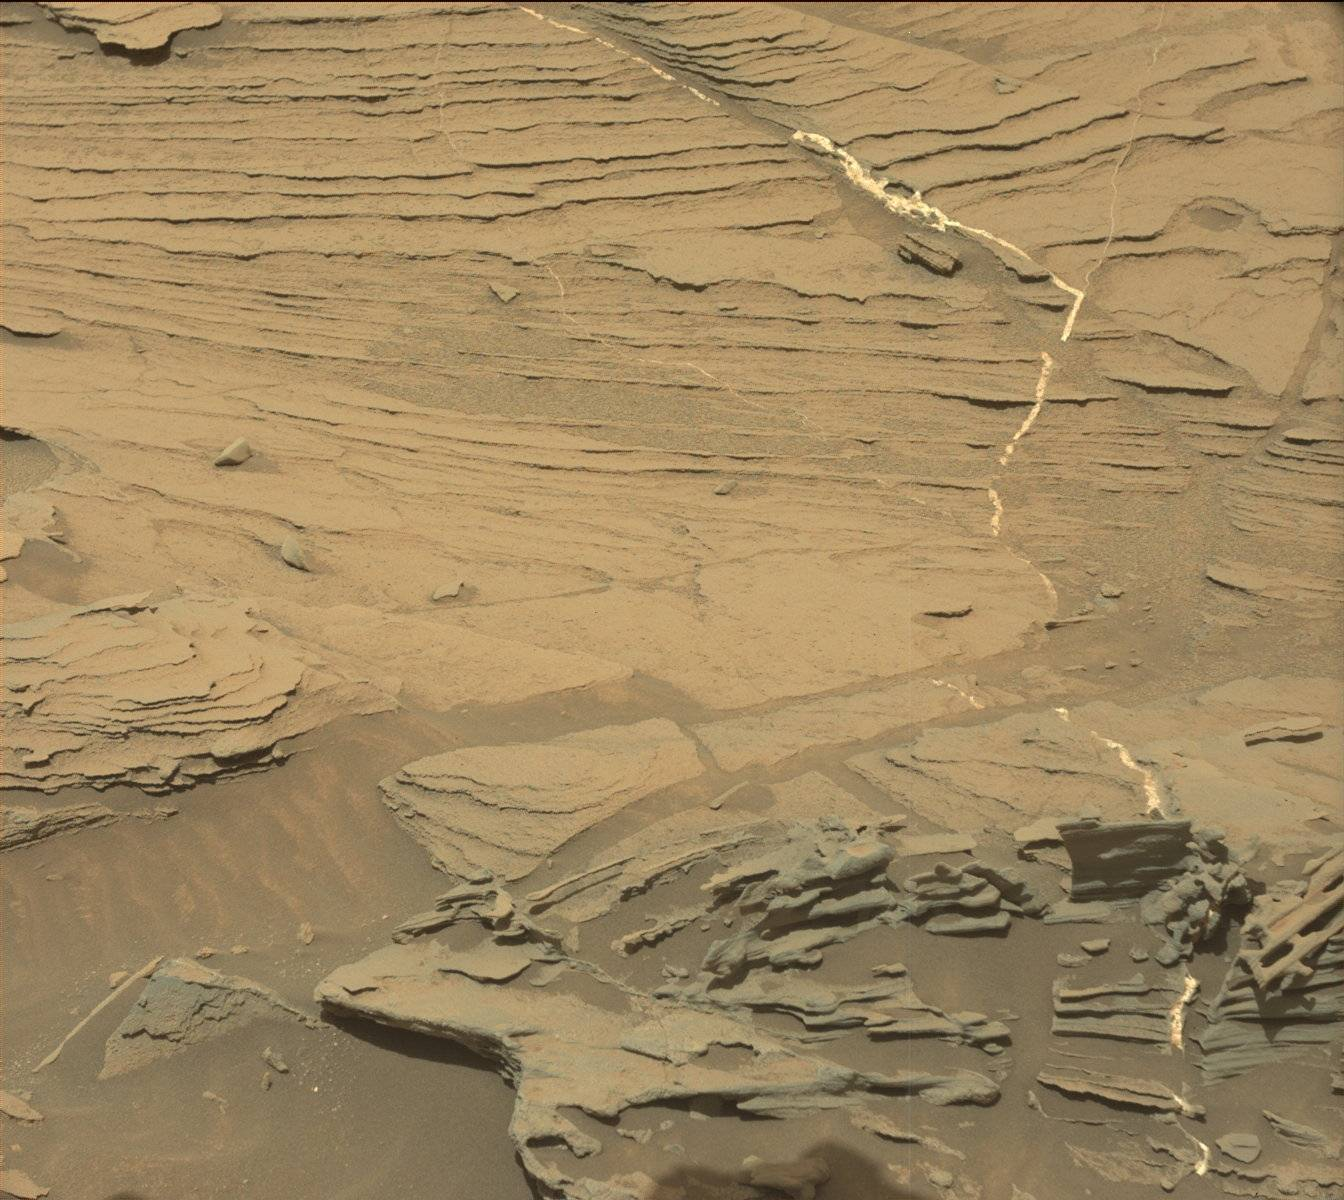 Raw Image: Spoon on Mars